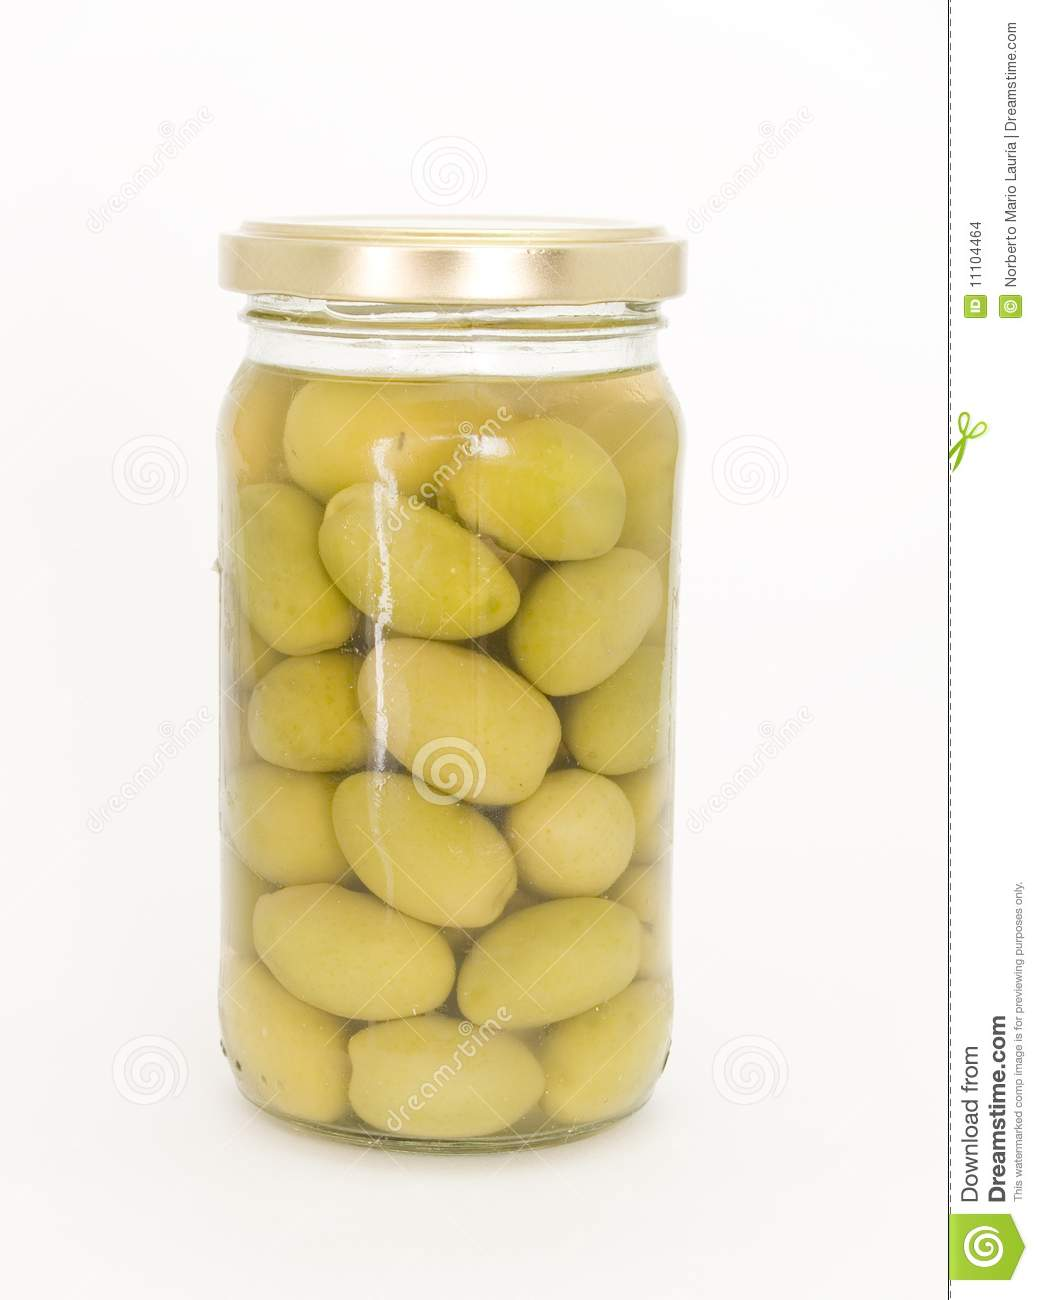 how to eat olives from jar